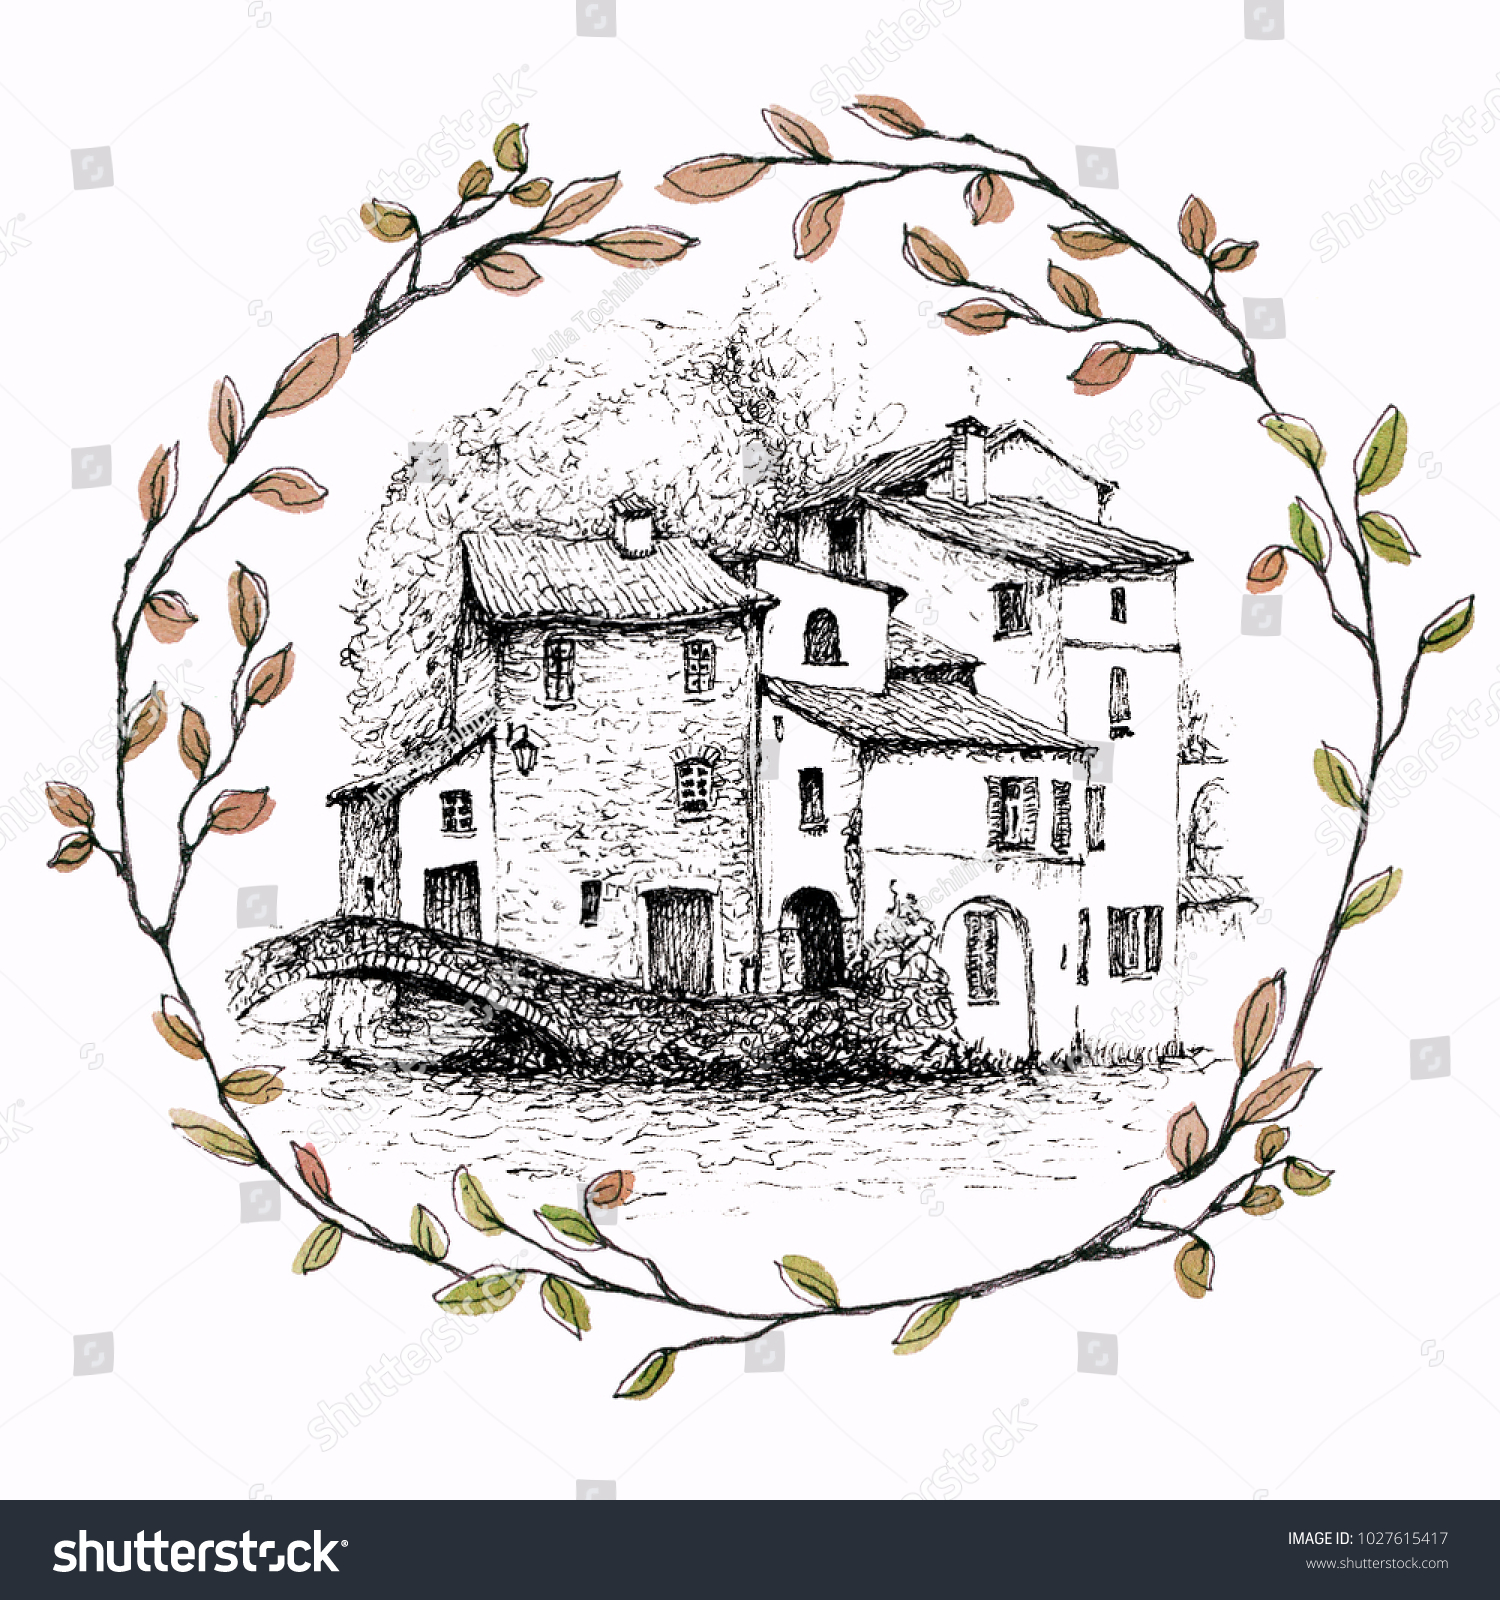 A pen sketch of italian landscape a village on a lake called como in